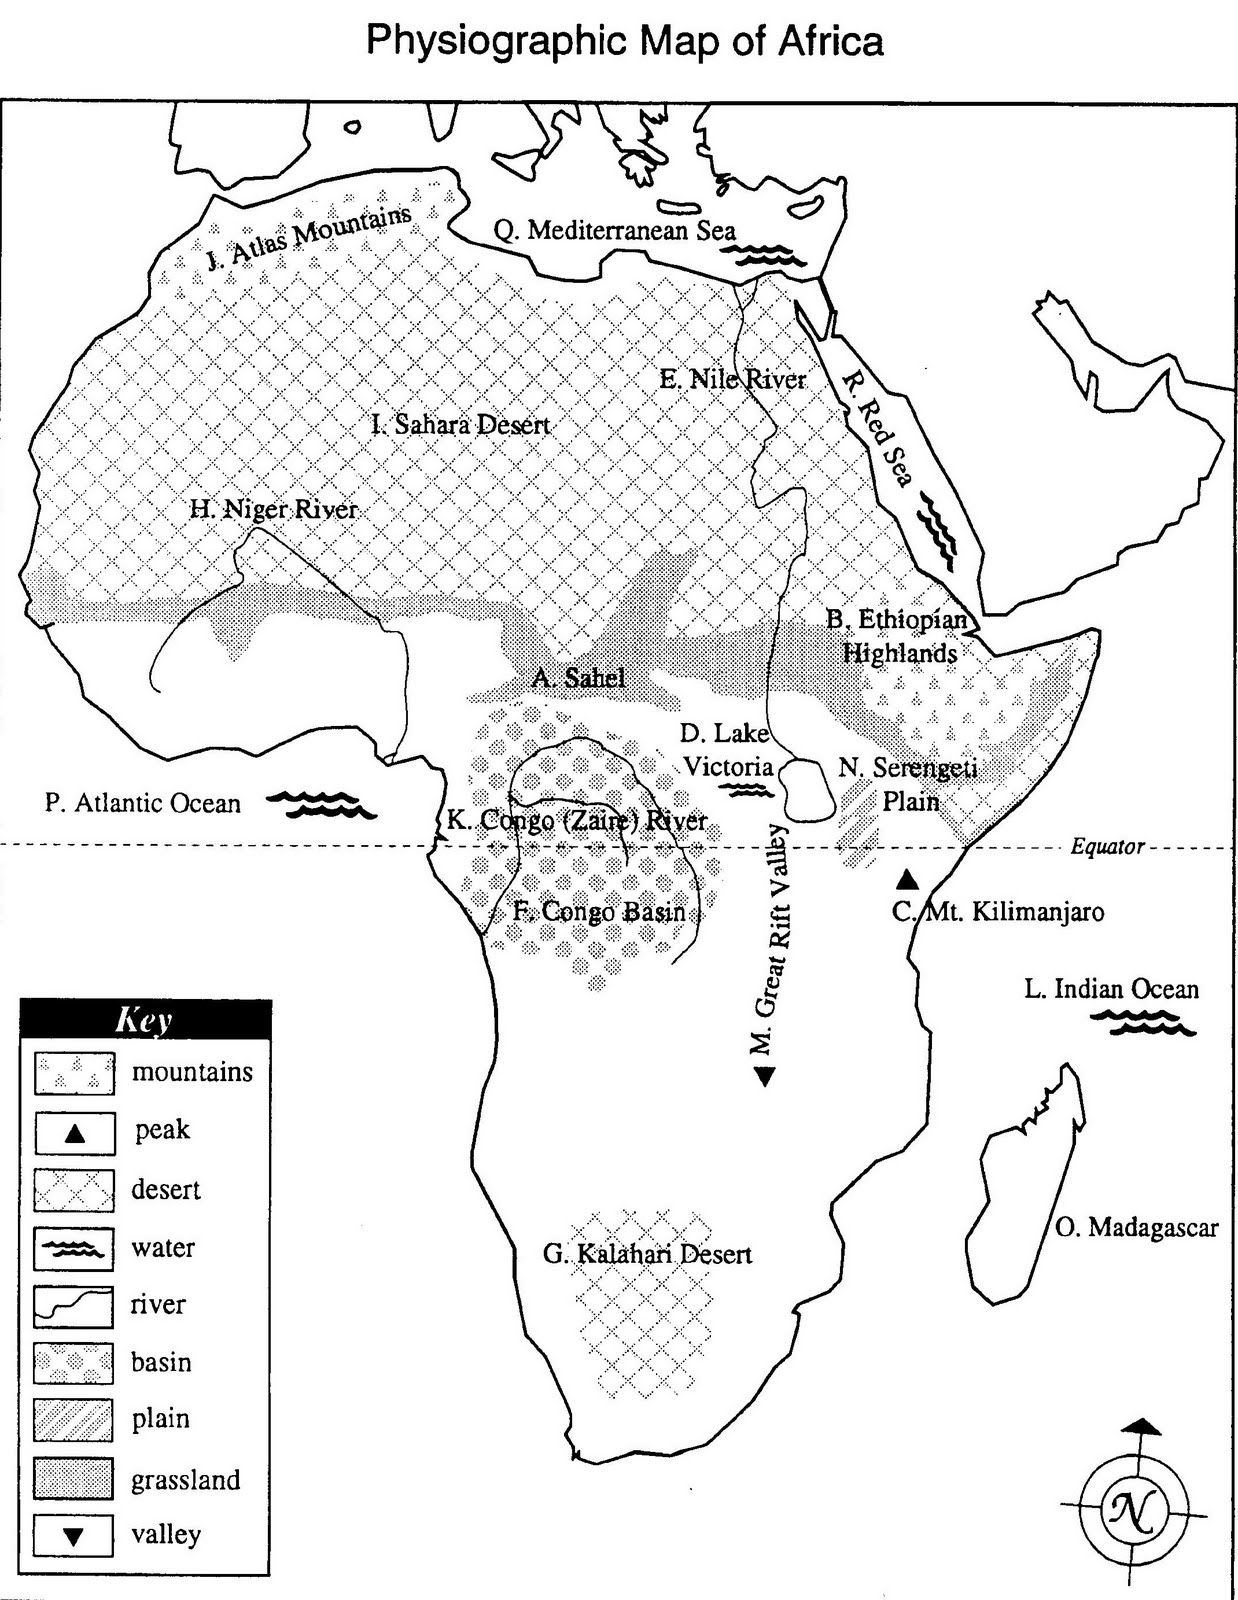 Physiographic Map Of Africa Golf Charlie Papa: Ten Things Teachers Taught Me Physiographic Map Of Africa